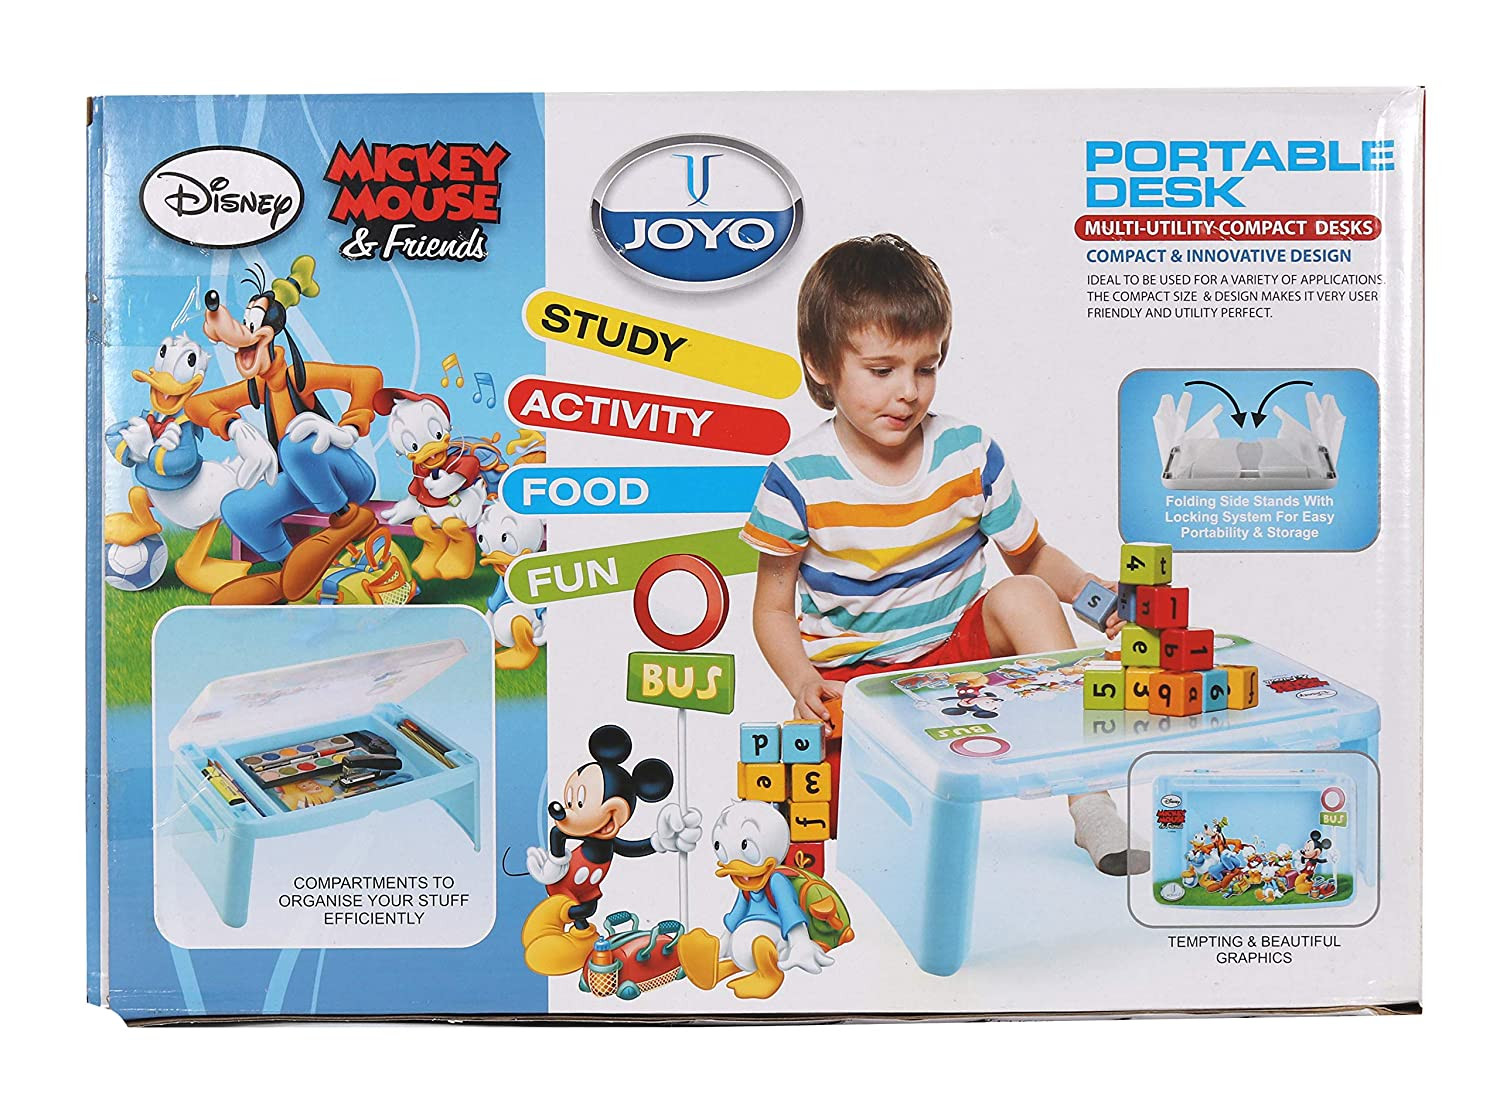 Joyo Disney Mickey Mouse N Friends Portable Desk Sky Blue Color Laptop Table Bed Table Study Table Kids Table